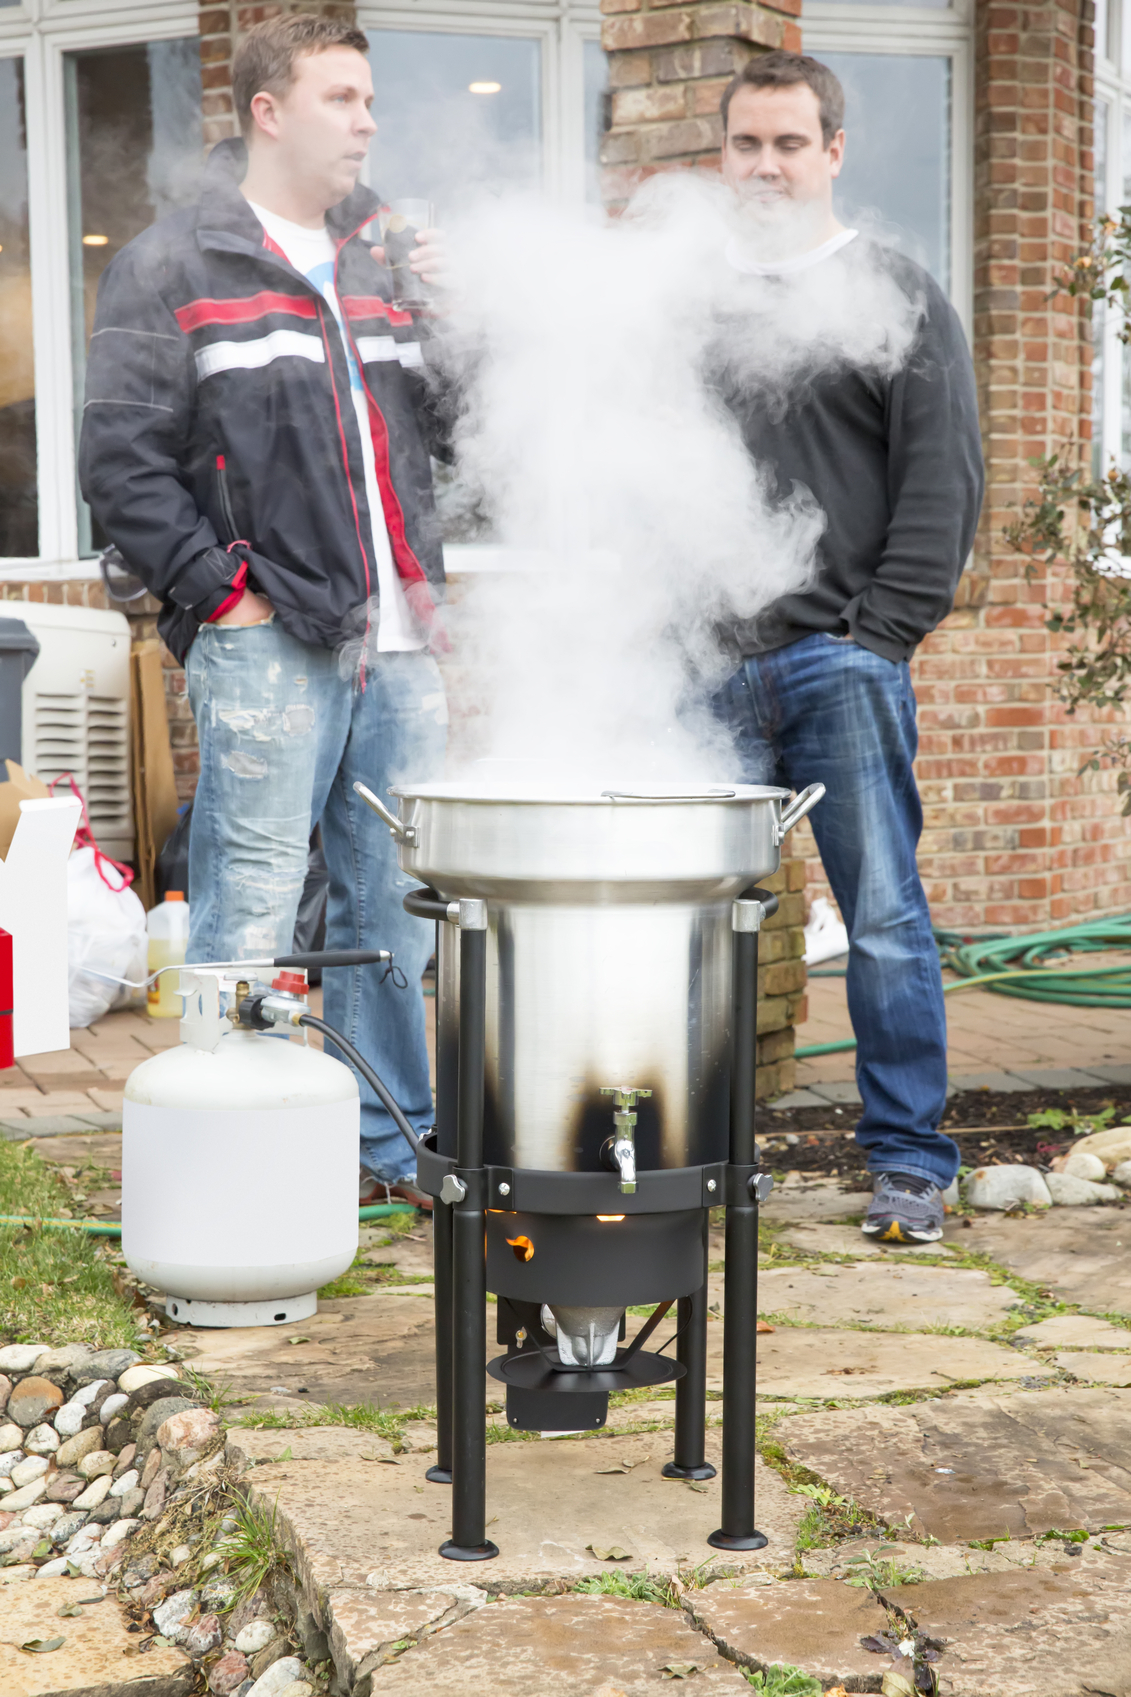 Two caucasian men are standing in a backyard with a stainless deep fryer that is cooking their Thanksgiving turkey. Steam is coming out of the pot because the oil is extremely hot. There is a propane tank attached to the deep fryer. Shot with a Canon 5D Mark 3. rm